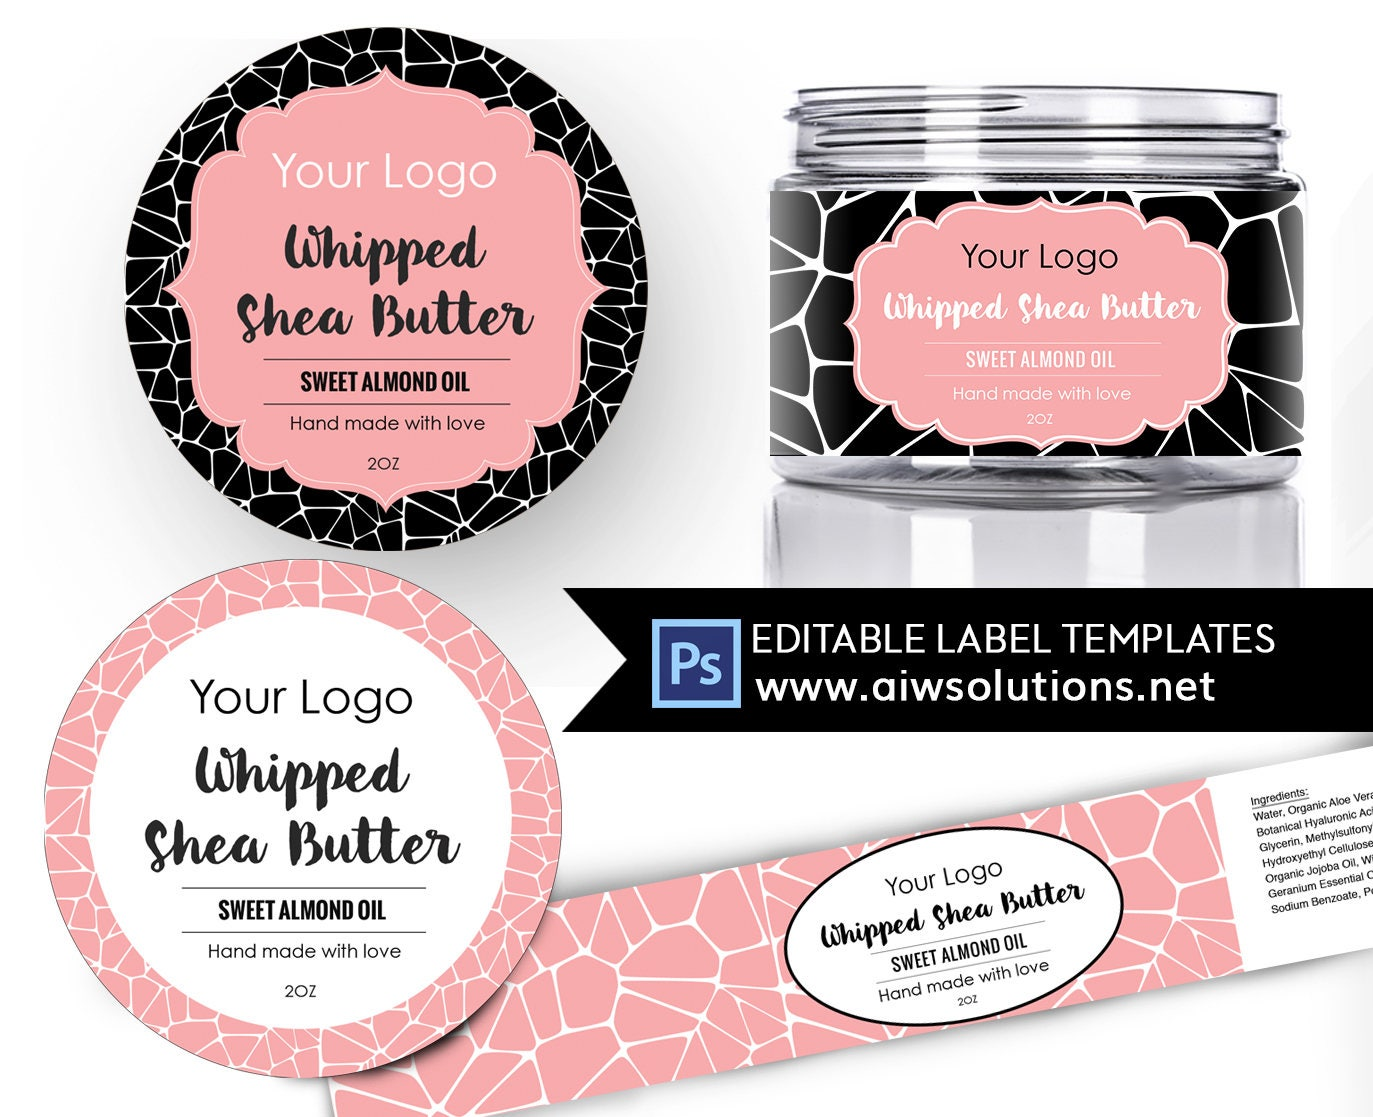 At Home Spa Day; Shea Butter label template, Body Butter label, Carrier Oils label, Fragrance Skin Care label, round label template, sticker template